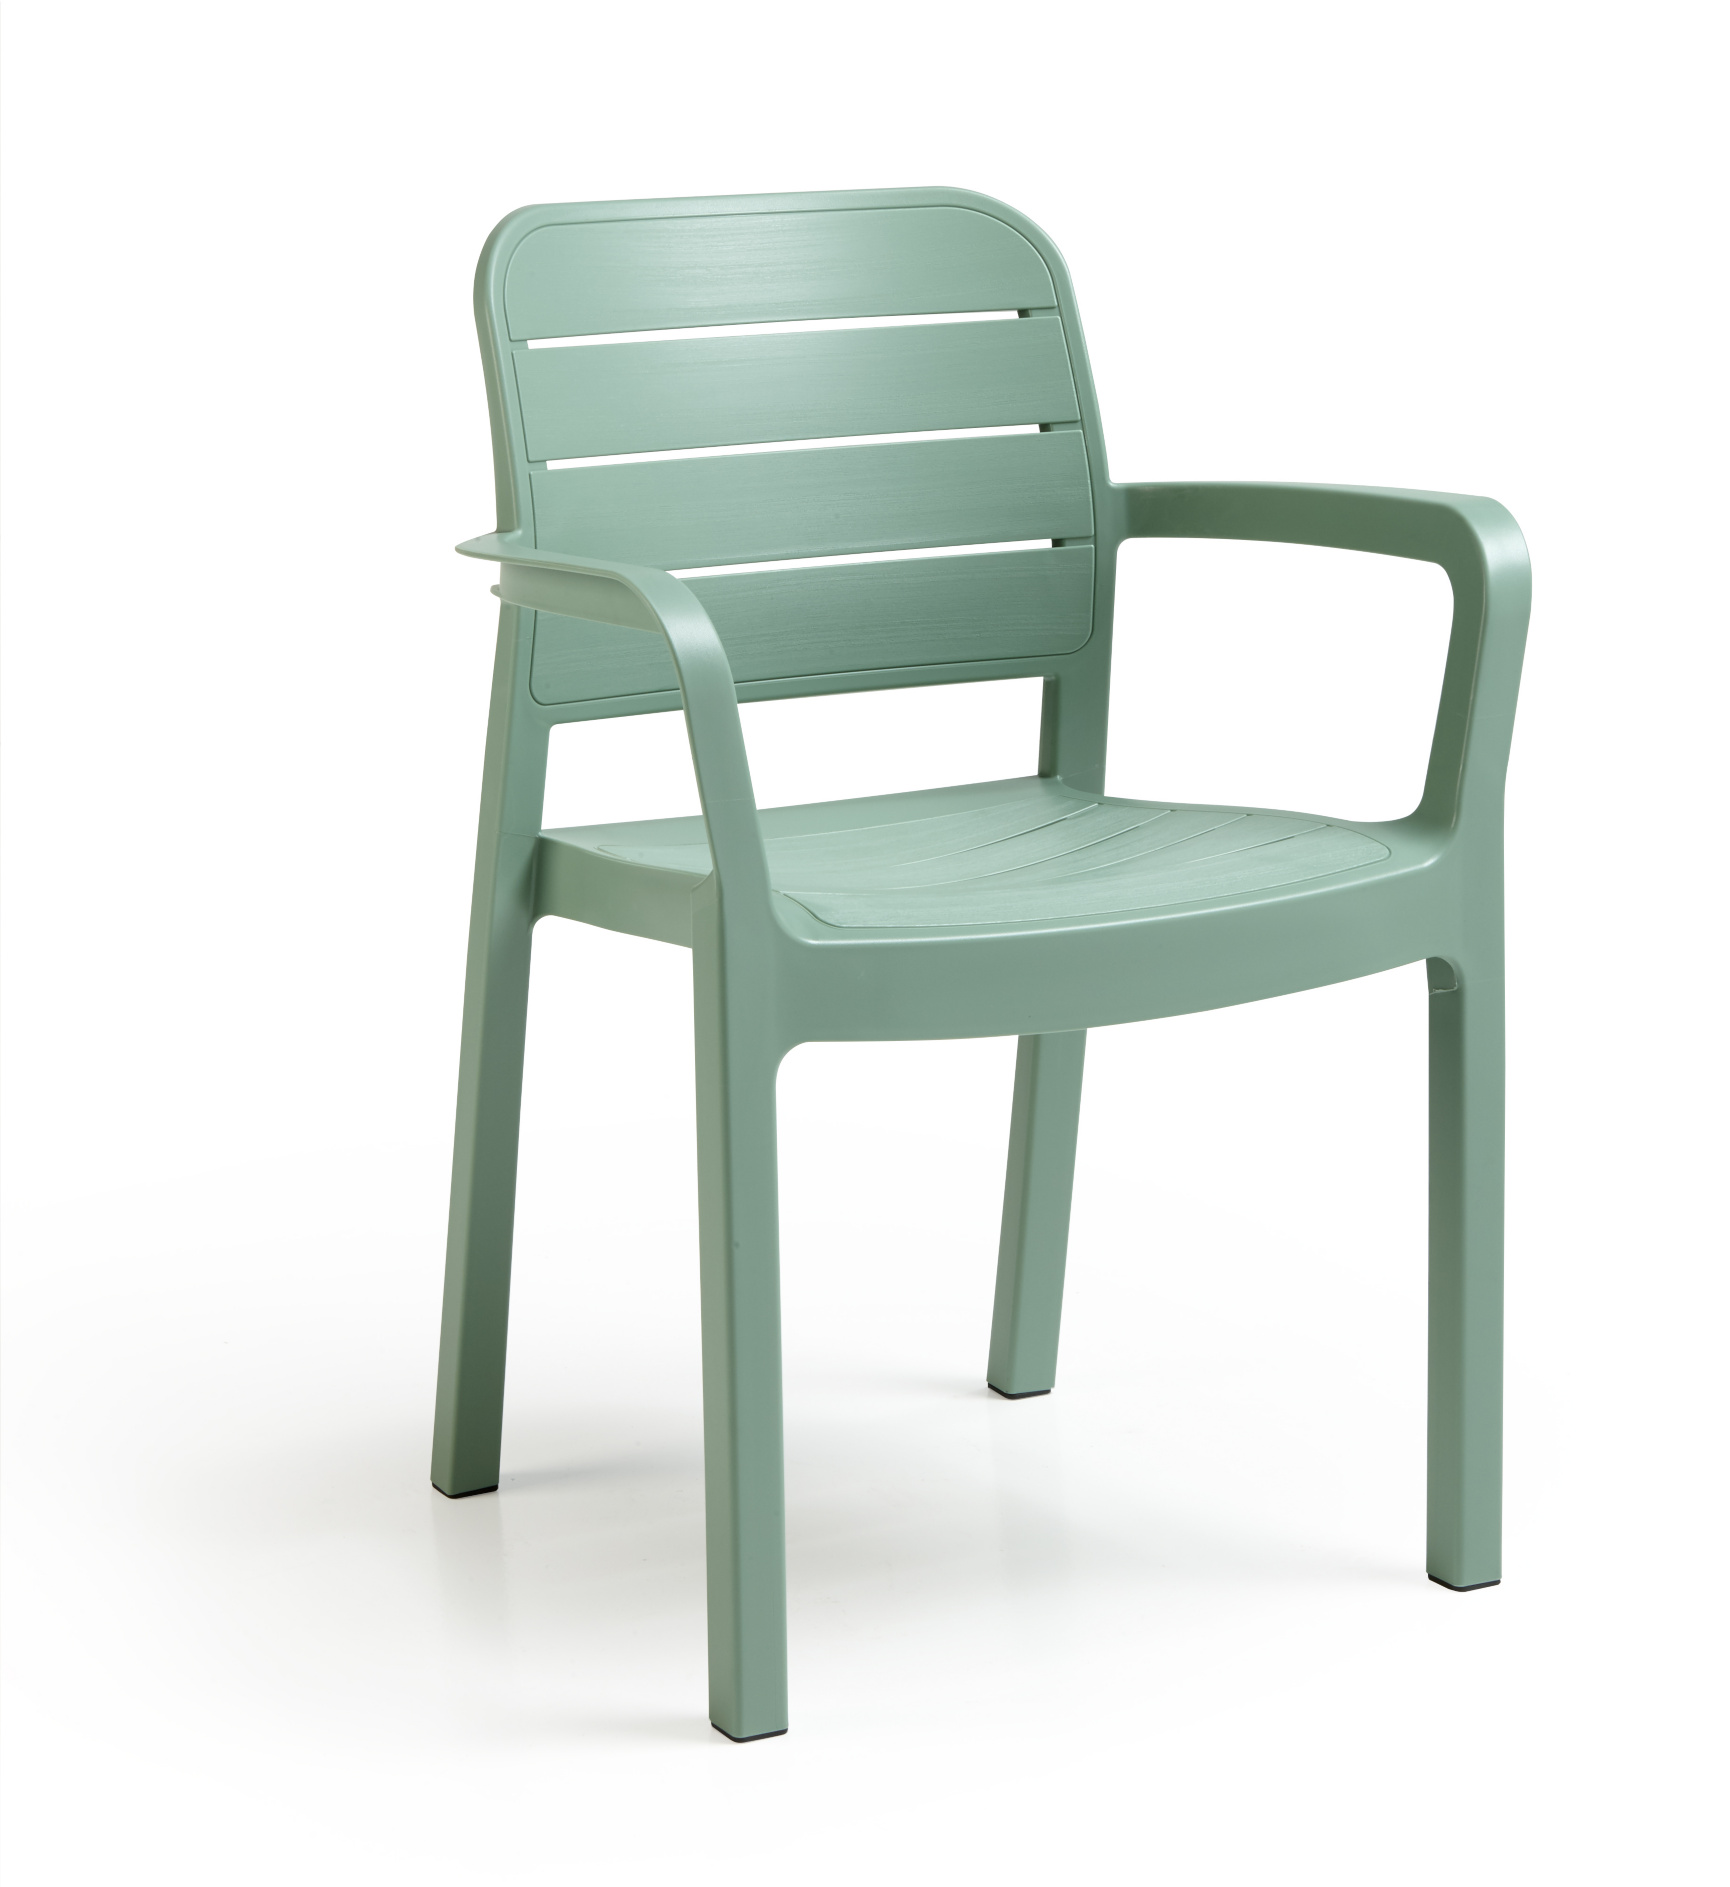 View   Tisara stackable chair greenGarden chairs   Garden Seating   Allibert. Green Plastic Stack Chairs. Home Design Ideas